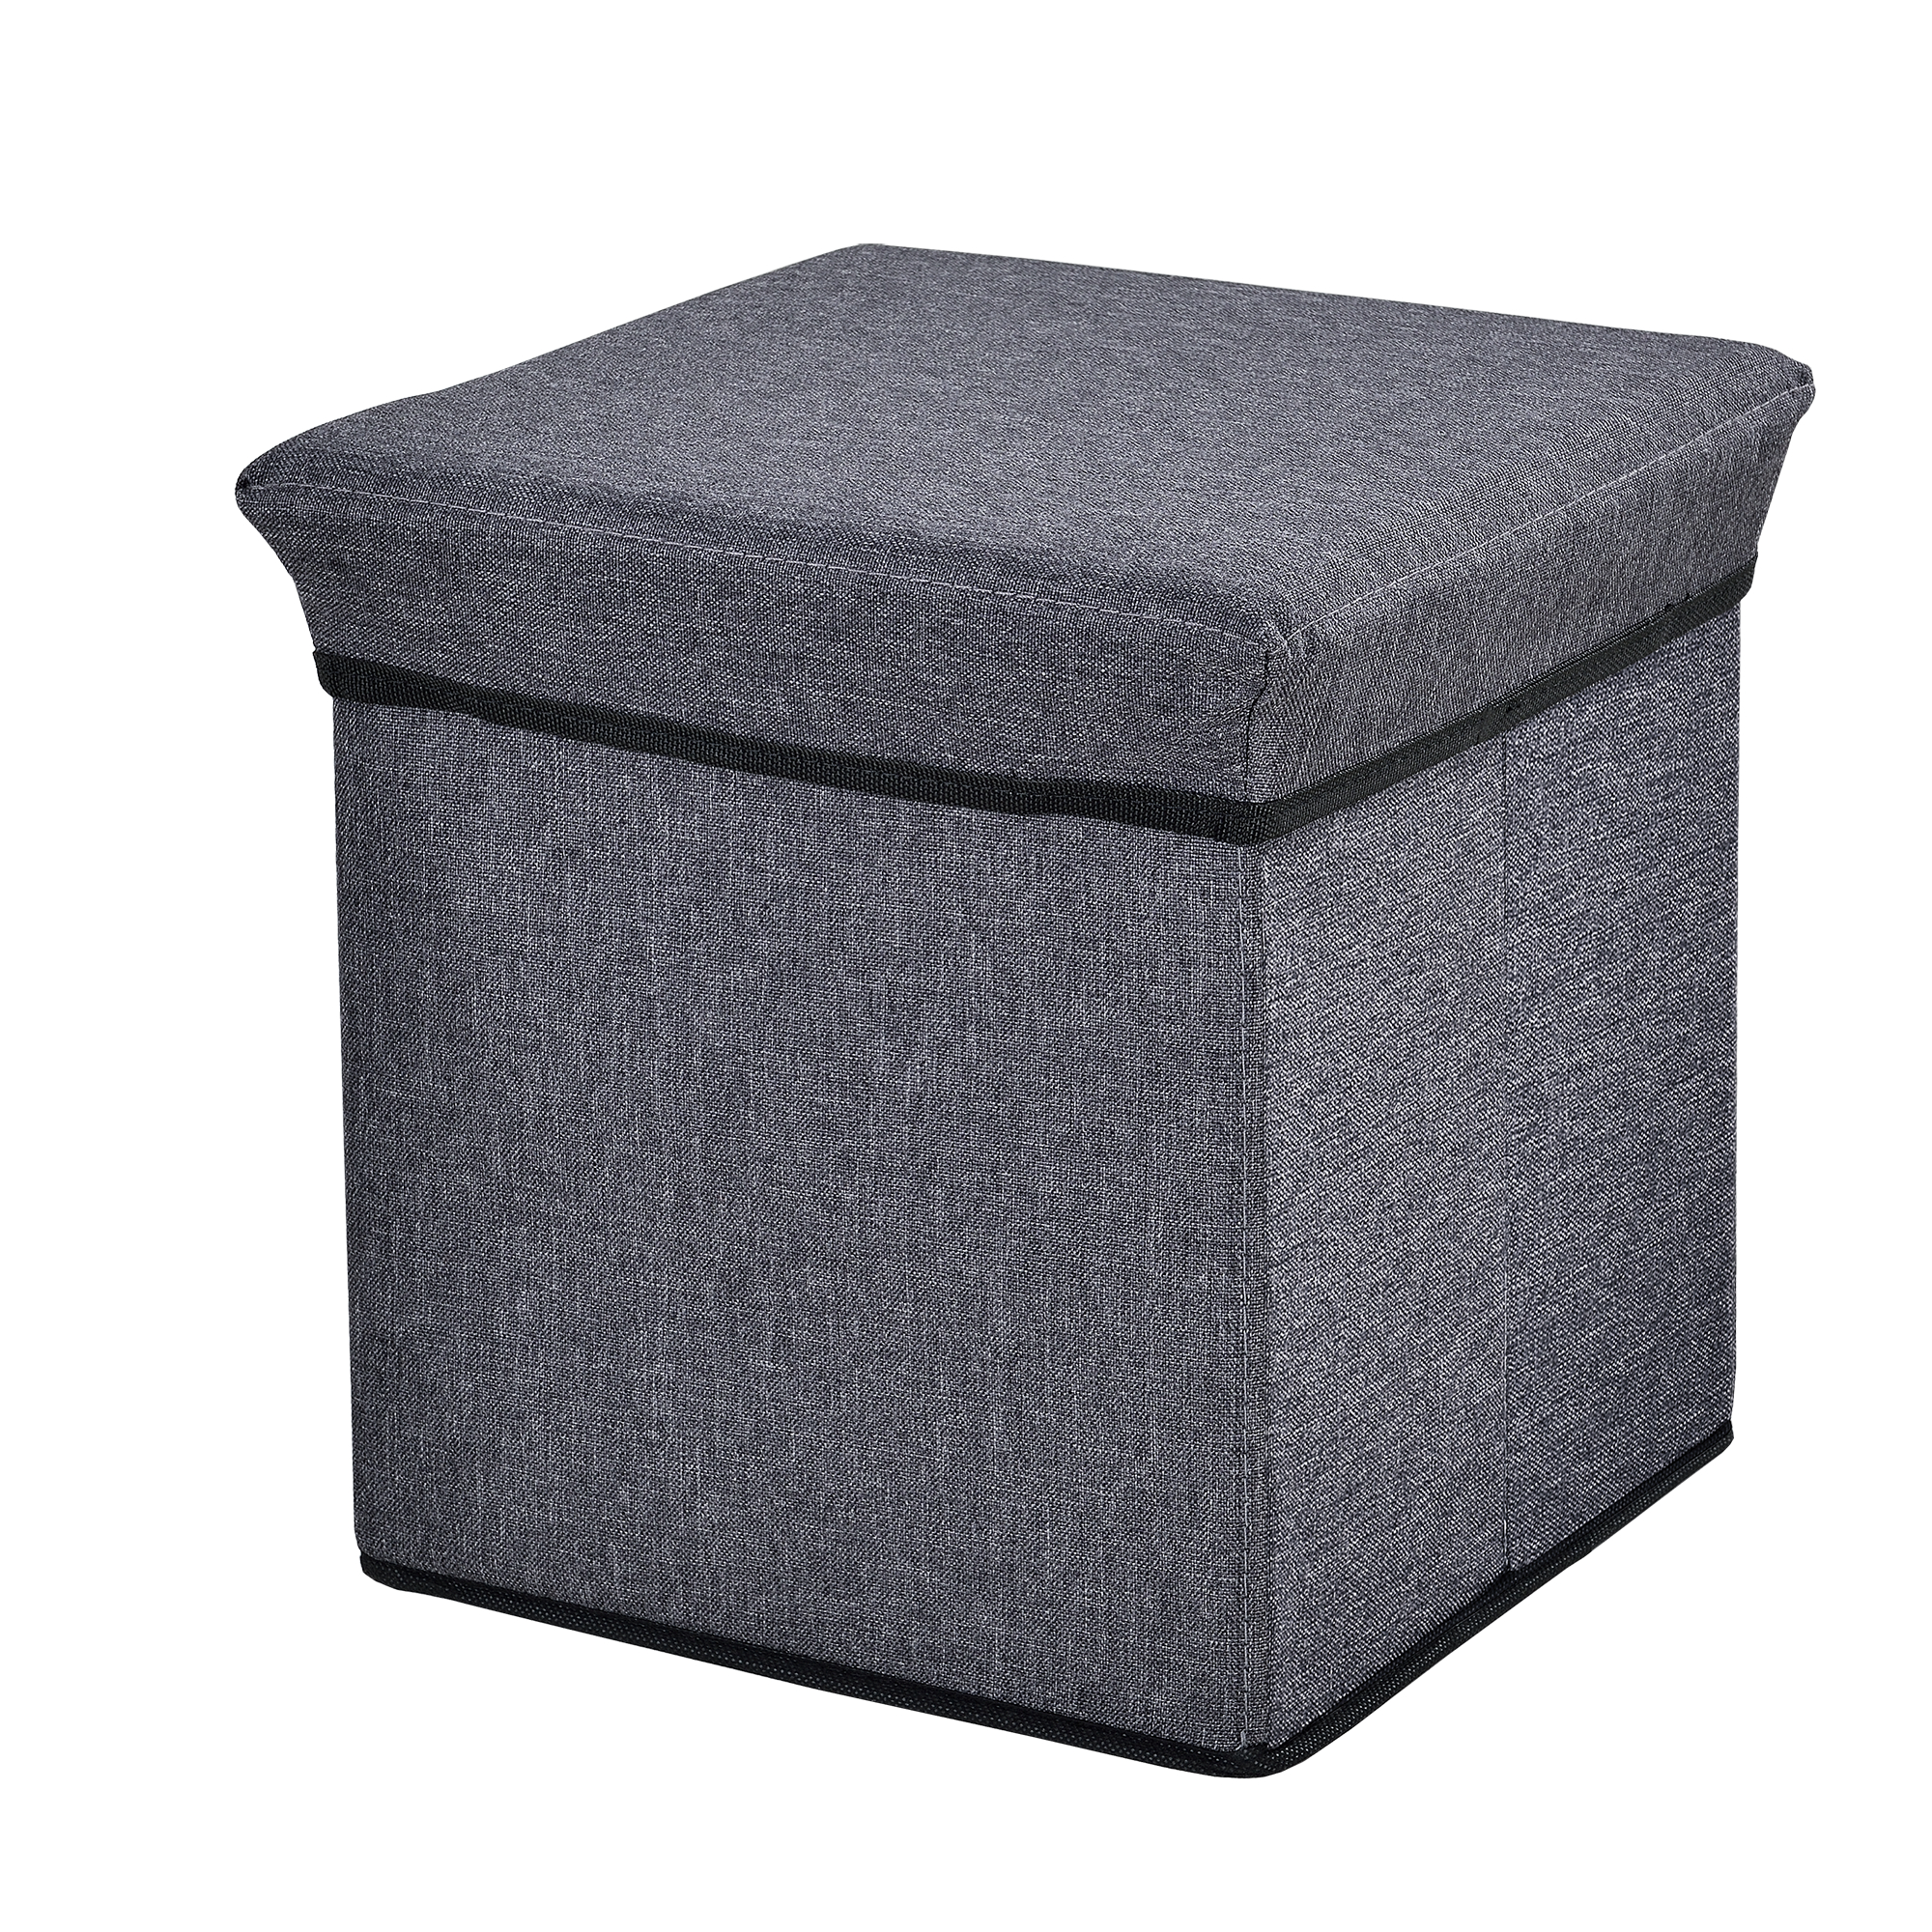 Ottoman seat chest 30x30x30cm folding box for Ottoman to sit on